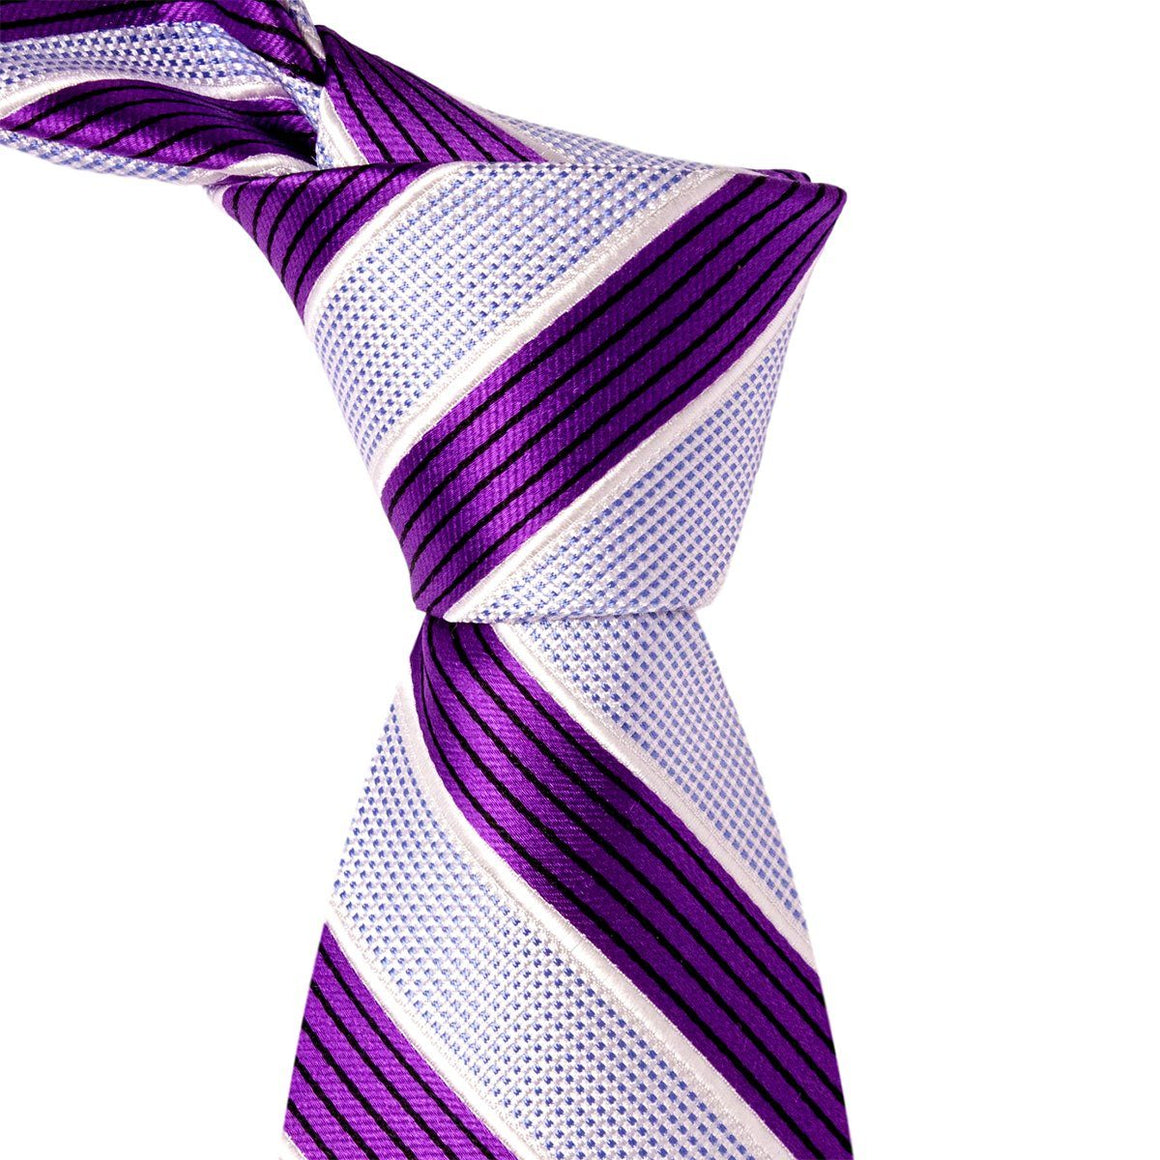 Wesley - TieThis Neckwear and Accessories and TieThis.com